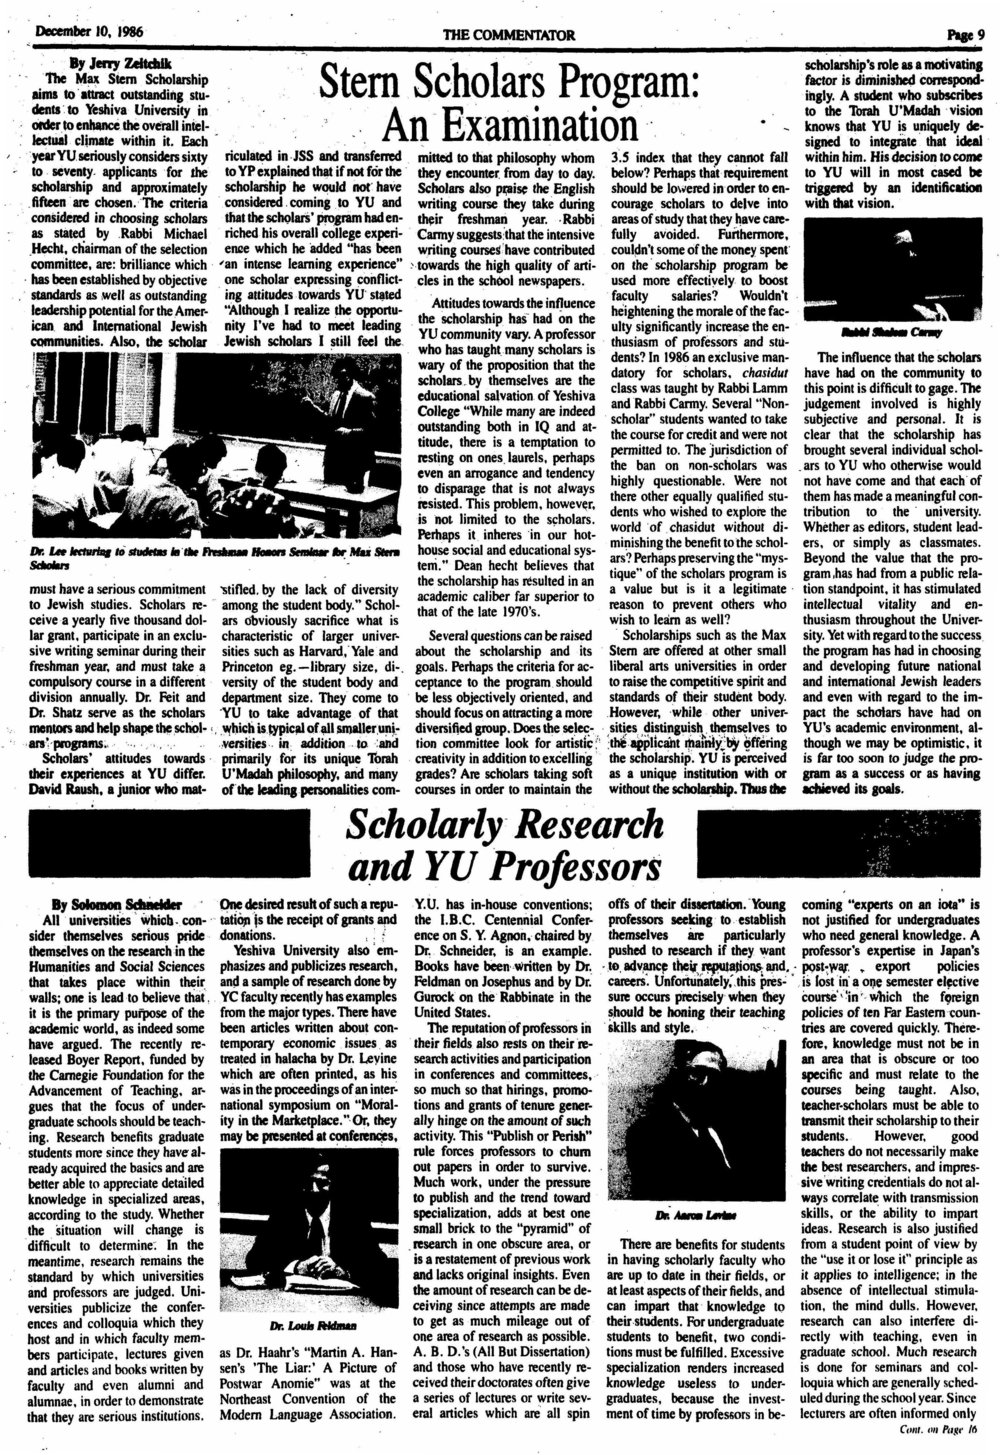 1986.12.10.TC--Scholarly Research and YU Professors_Page_1.jpg